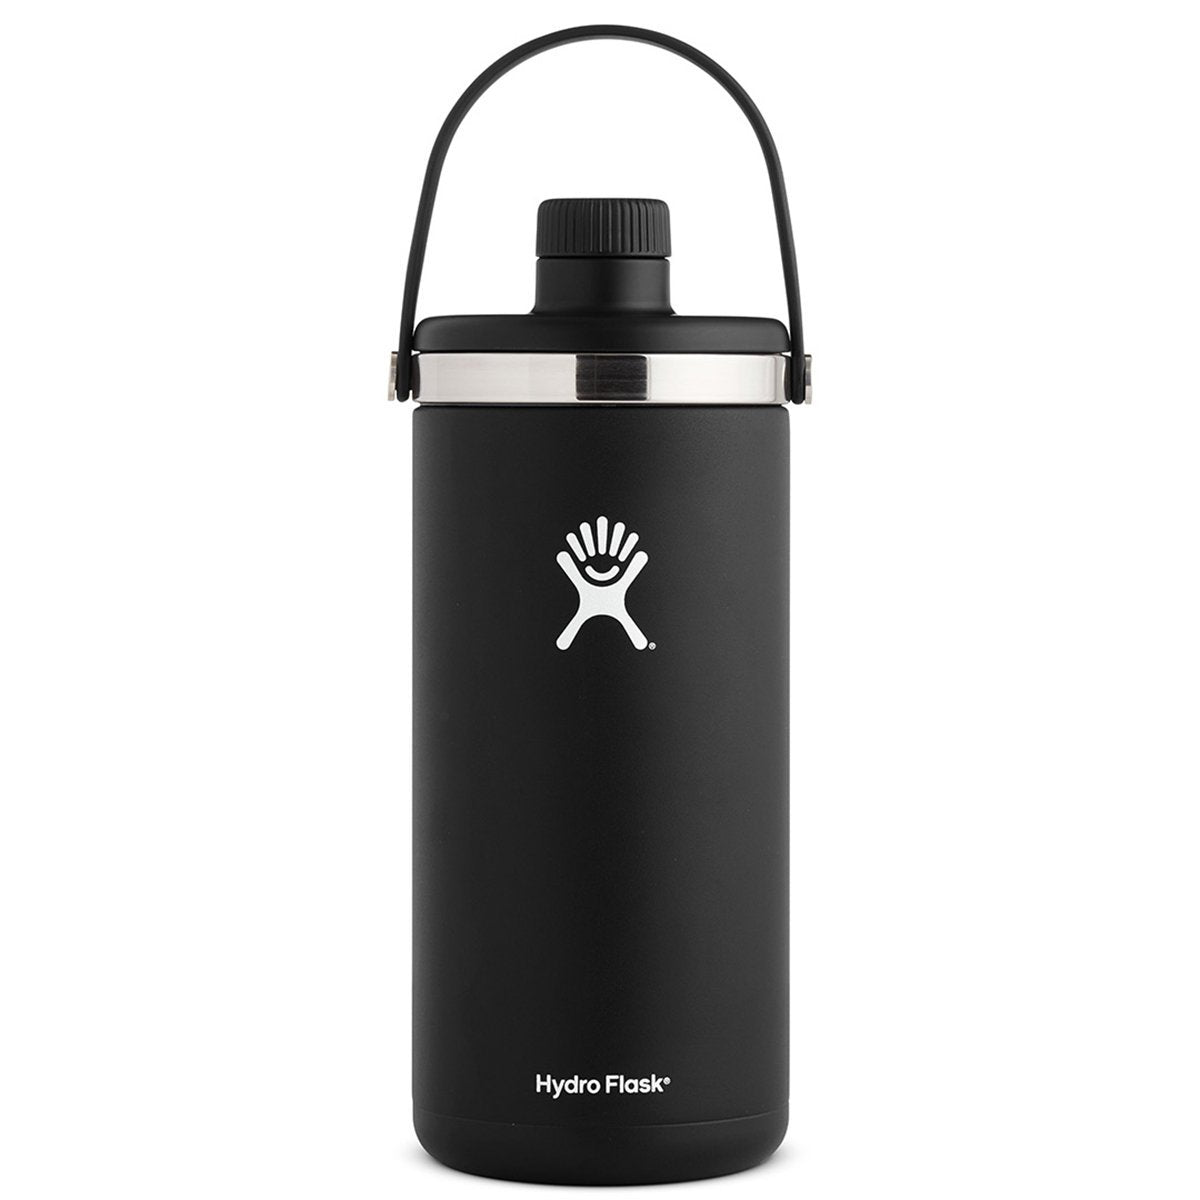 Hydro Flask - Oasis 128oz » Insulated Food Container, Large Food Flask - Black